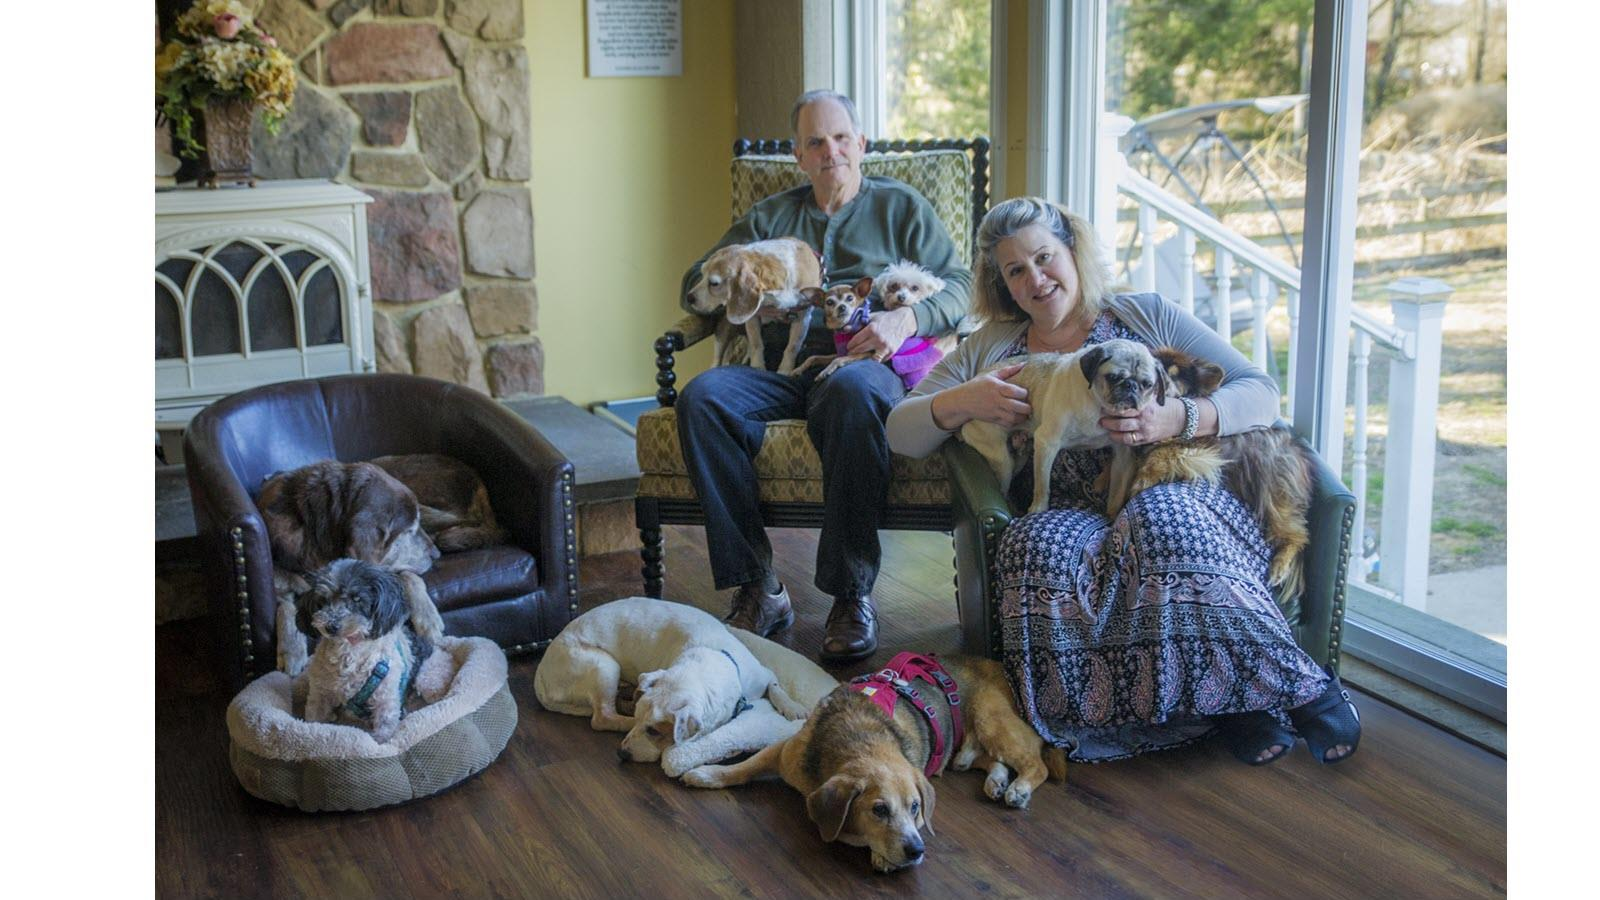 Jeff Allen and wife Michele surrounded by dogs they care for